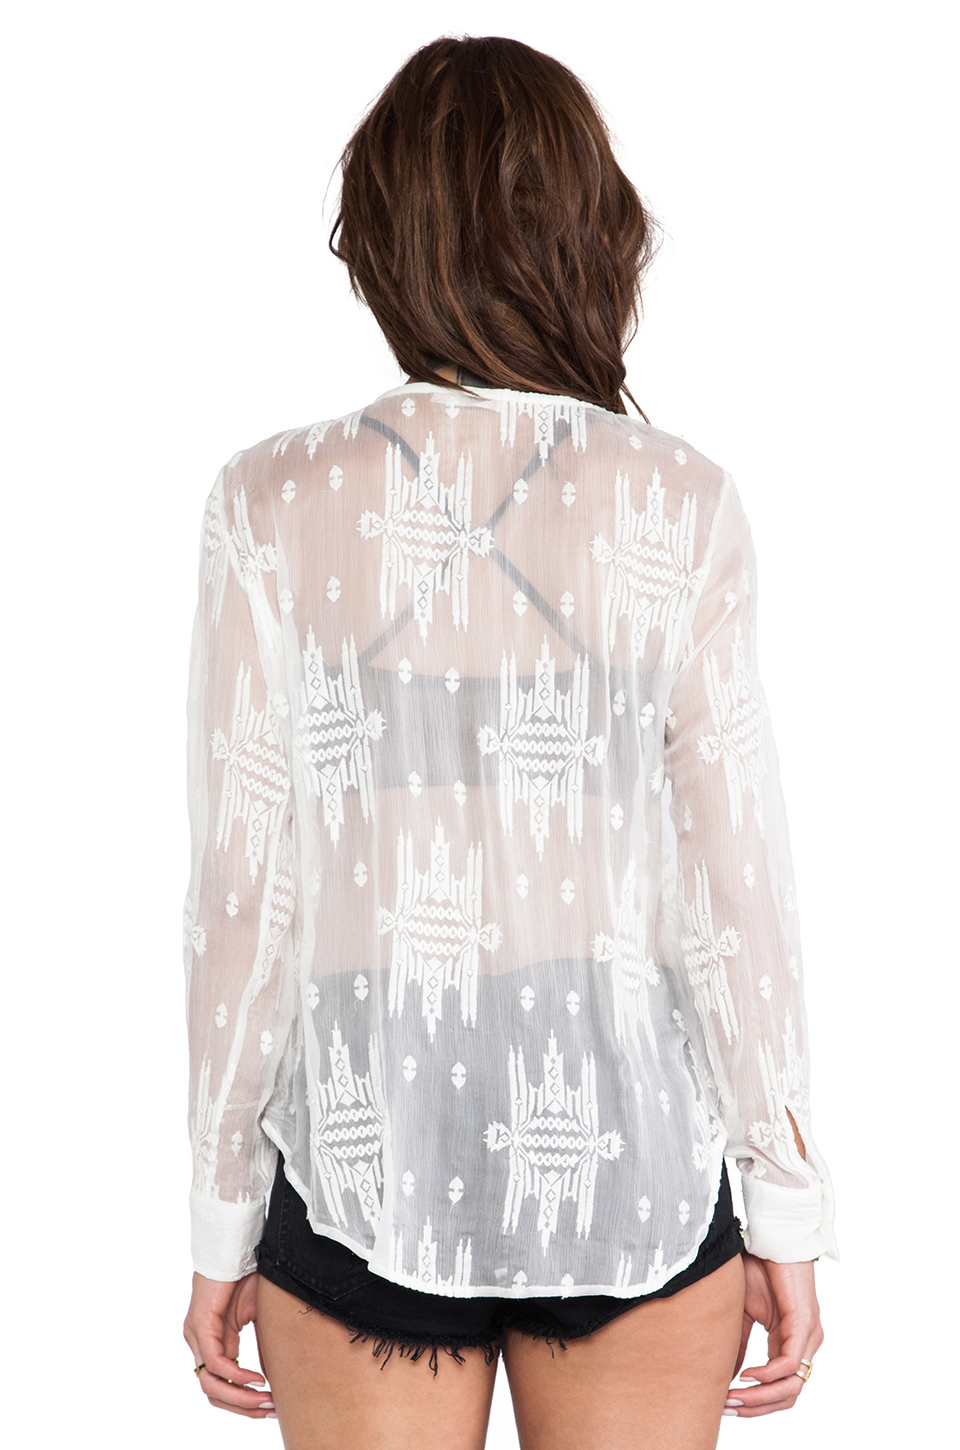 Capulet Lace Up Blouse in White Aztec from REVOLVEclothing.com